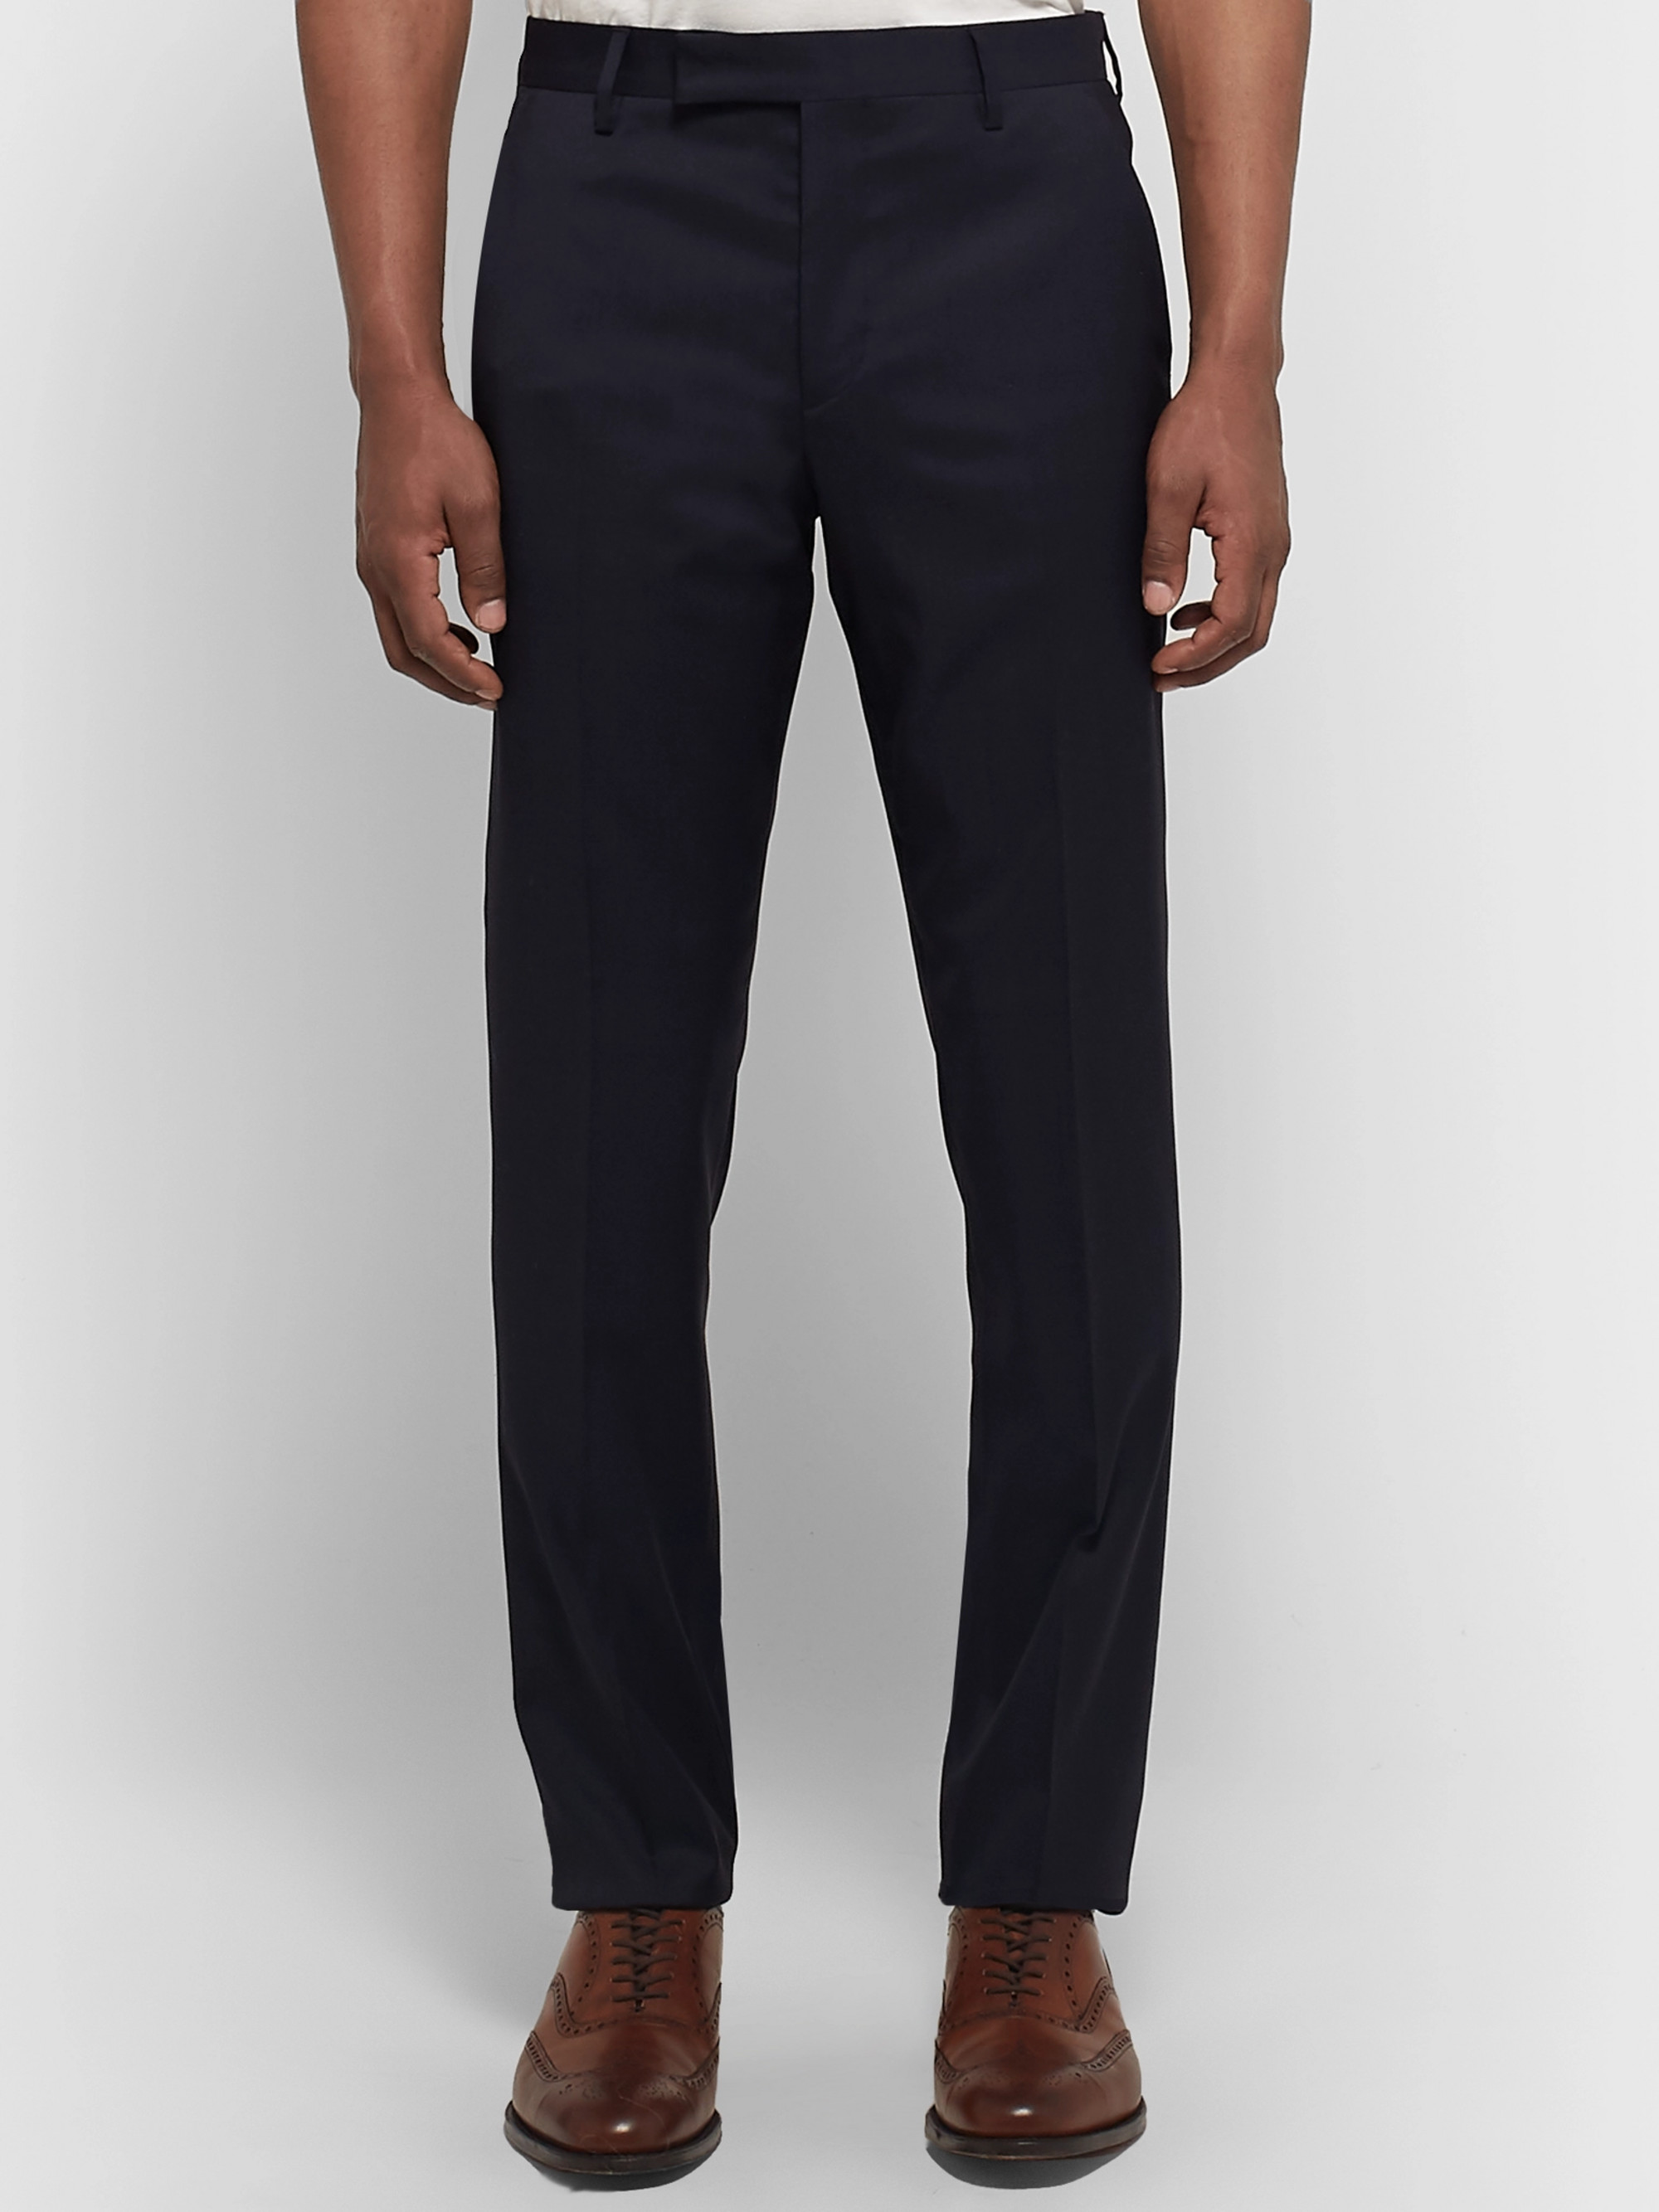 Paul Smith Midnight-Blue Soho Slim-Fit Wool Suit Trousers